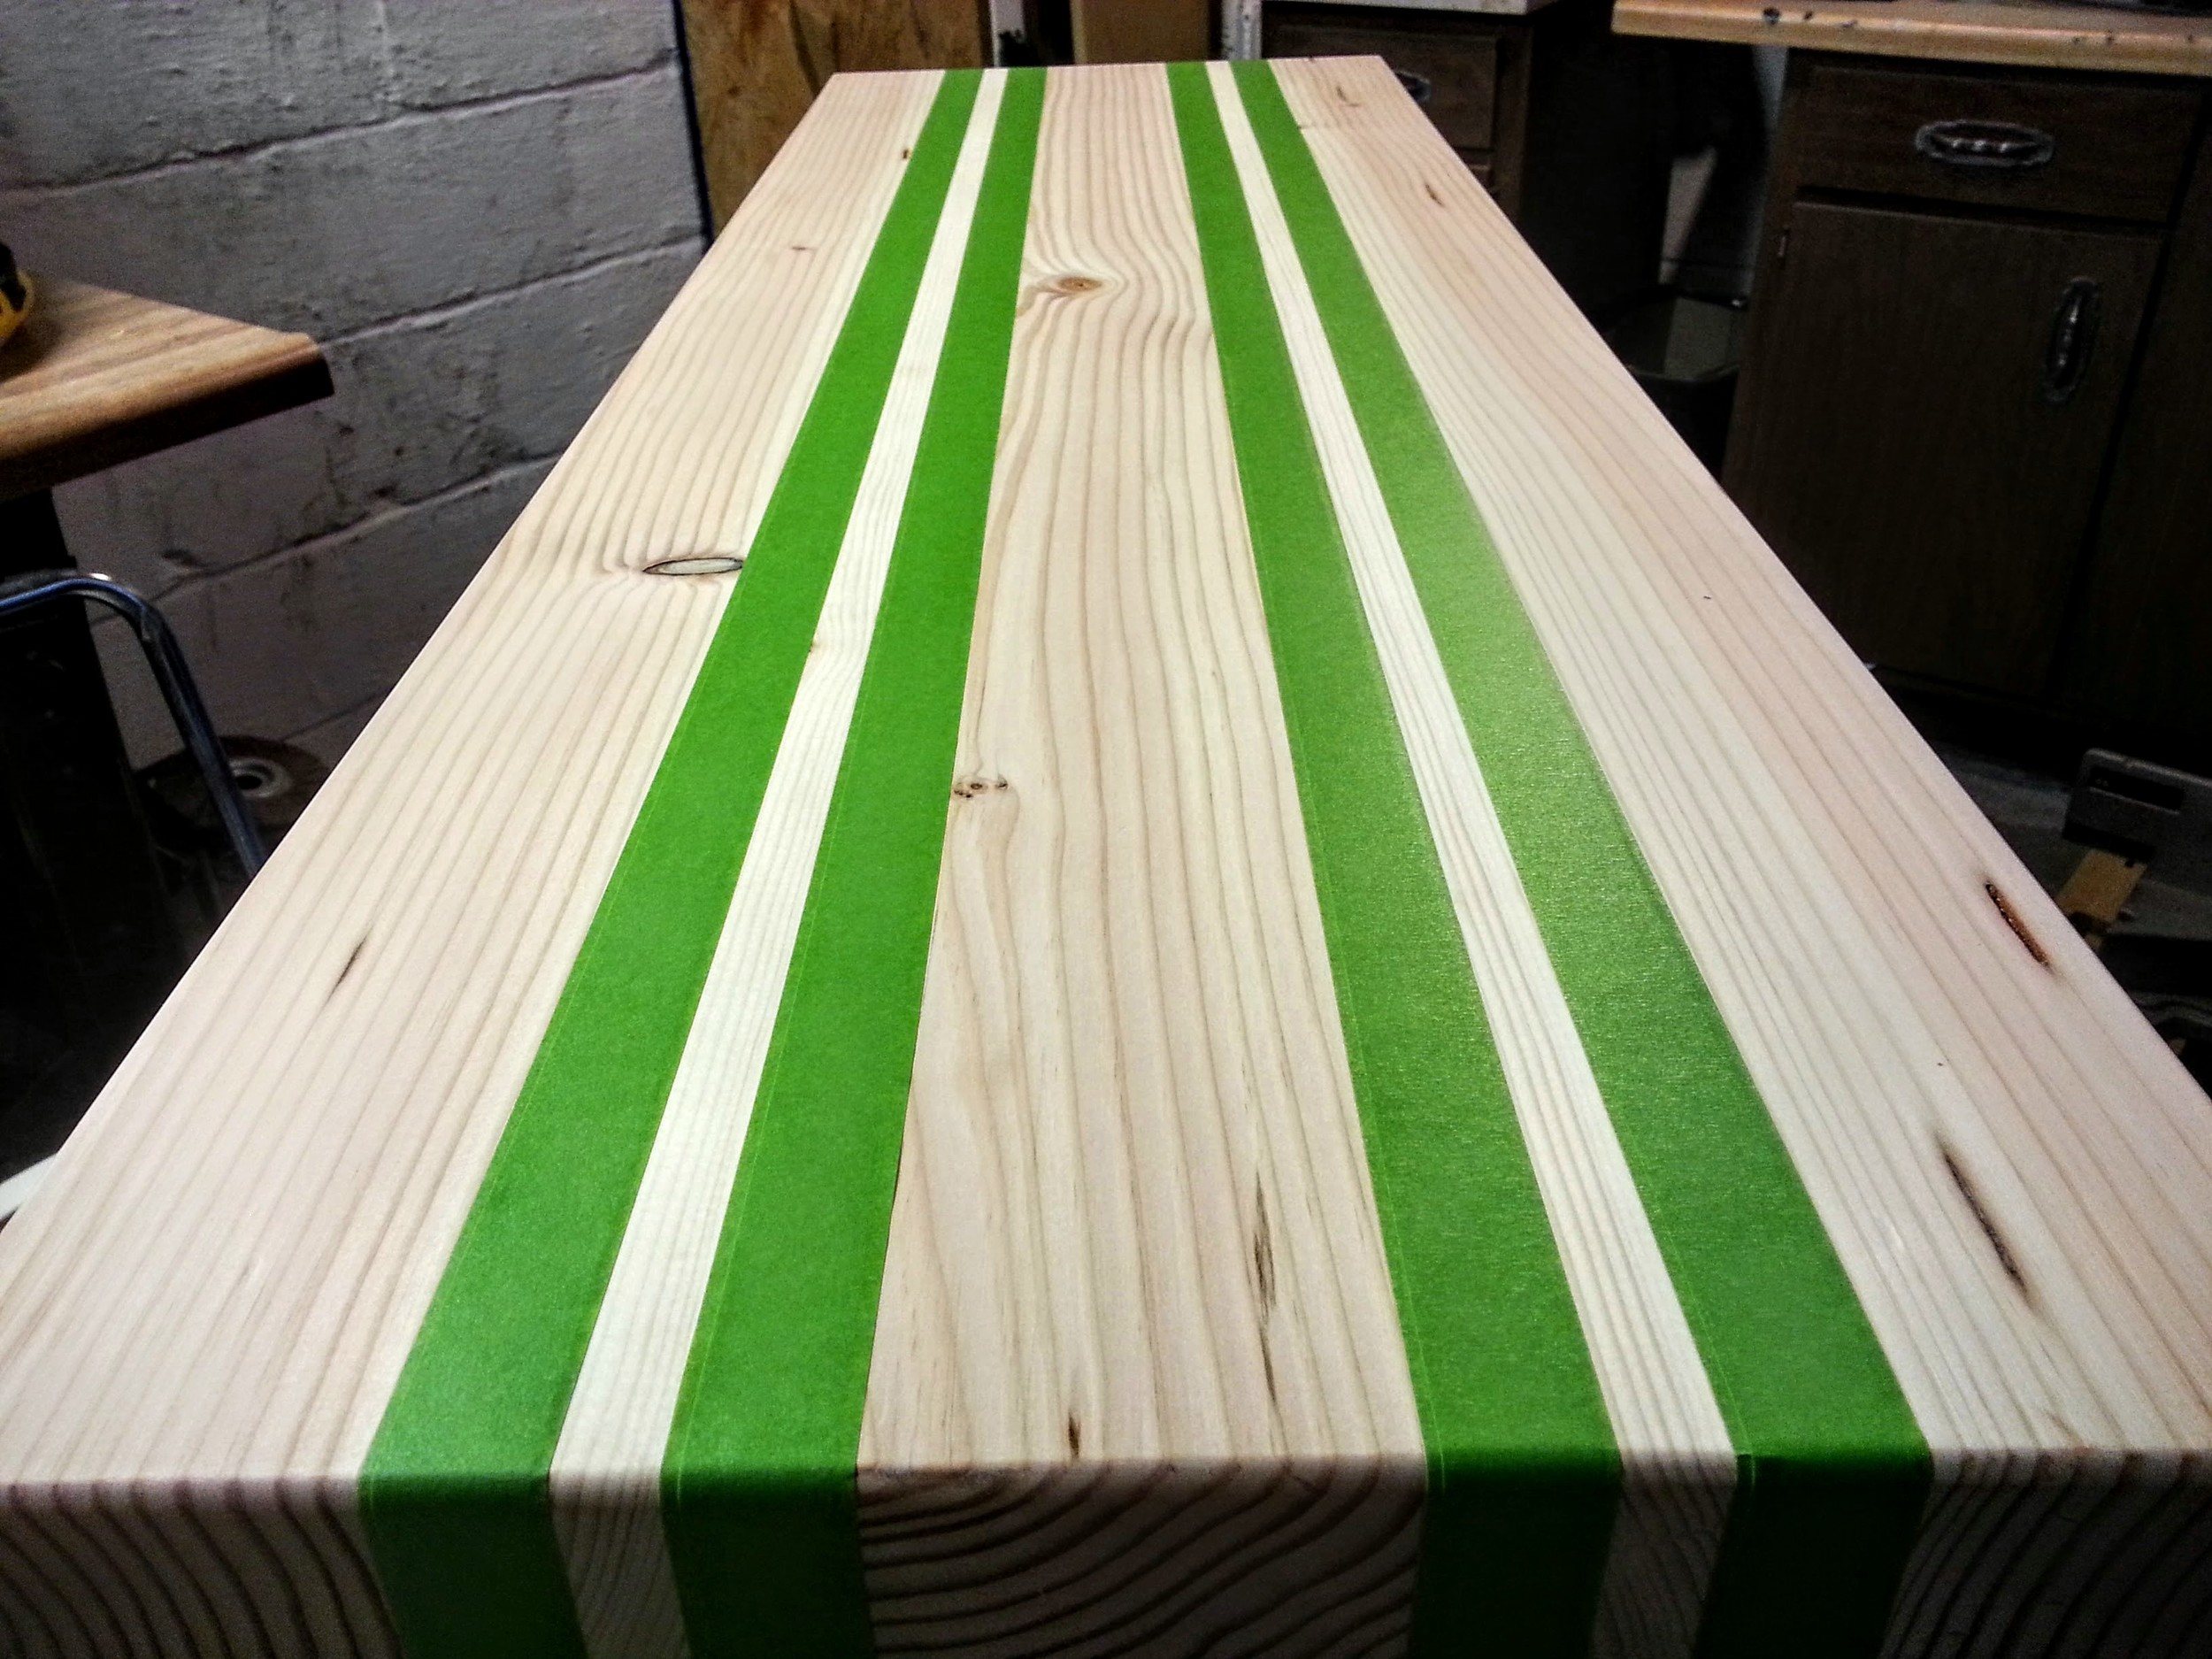 Masking off every other board with FrogTape to keep the stain from bleeding across boards